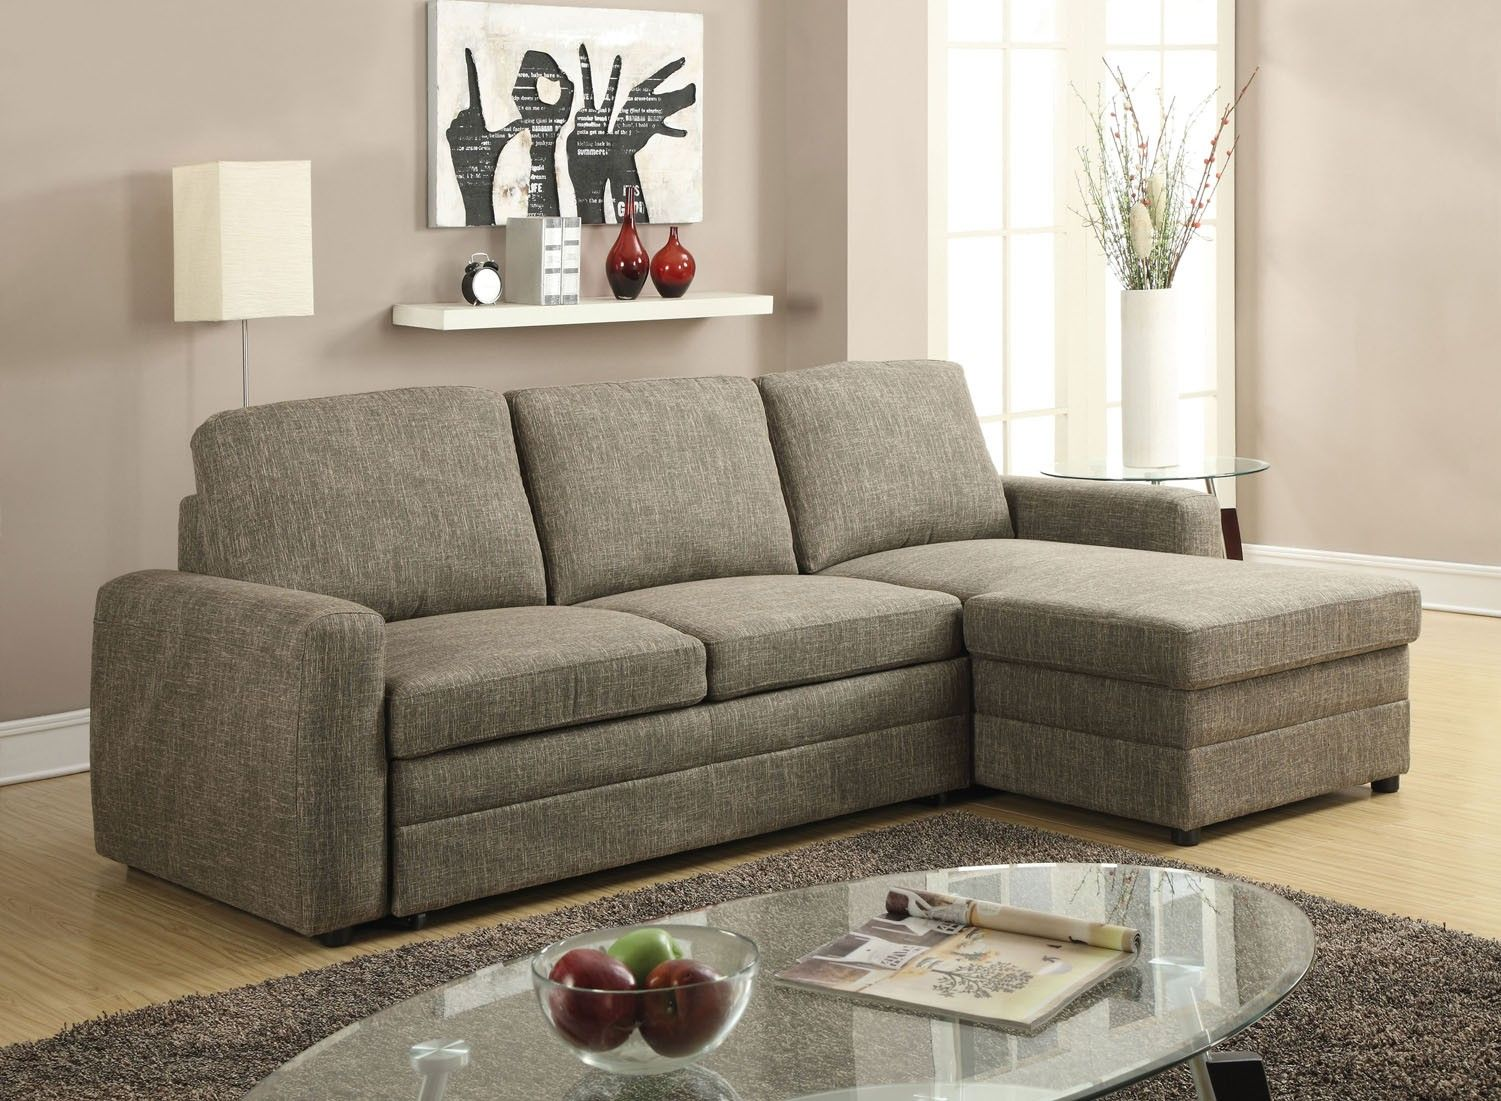 Living Room Sets Pull Out Bed acme 51645 linen sectional with pull out bed | beach cottages